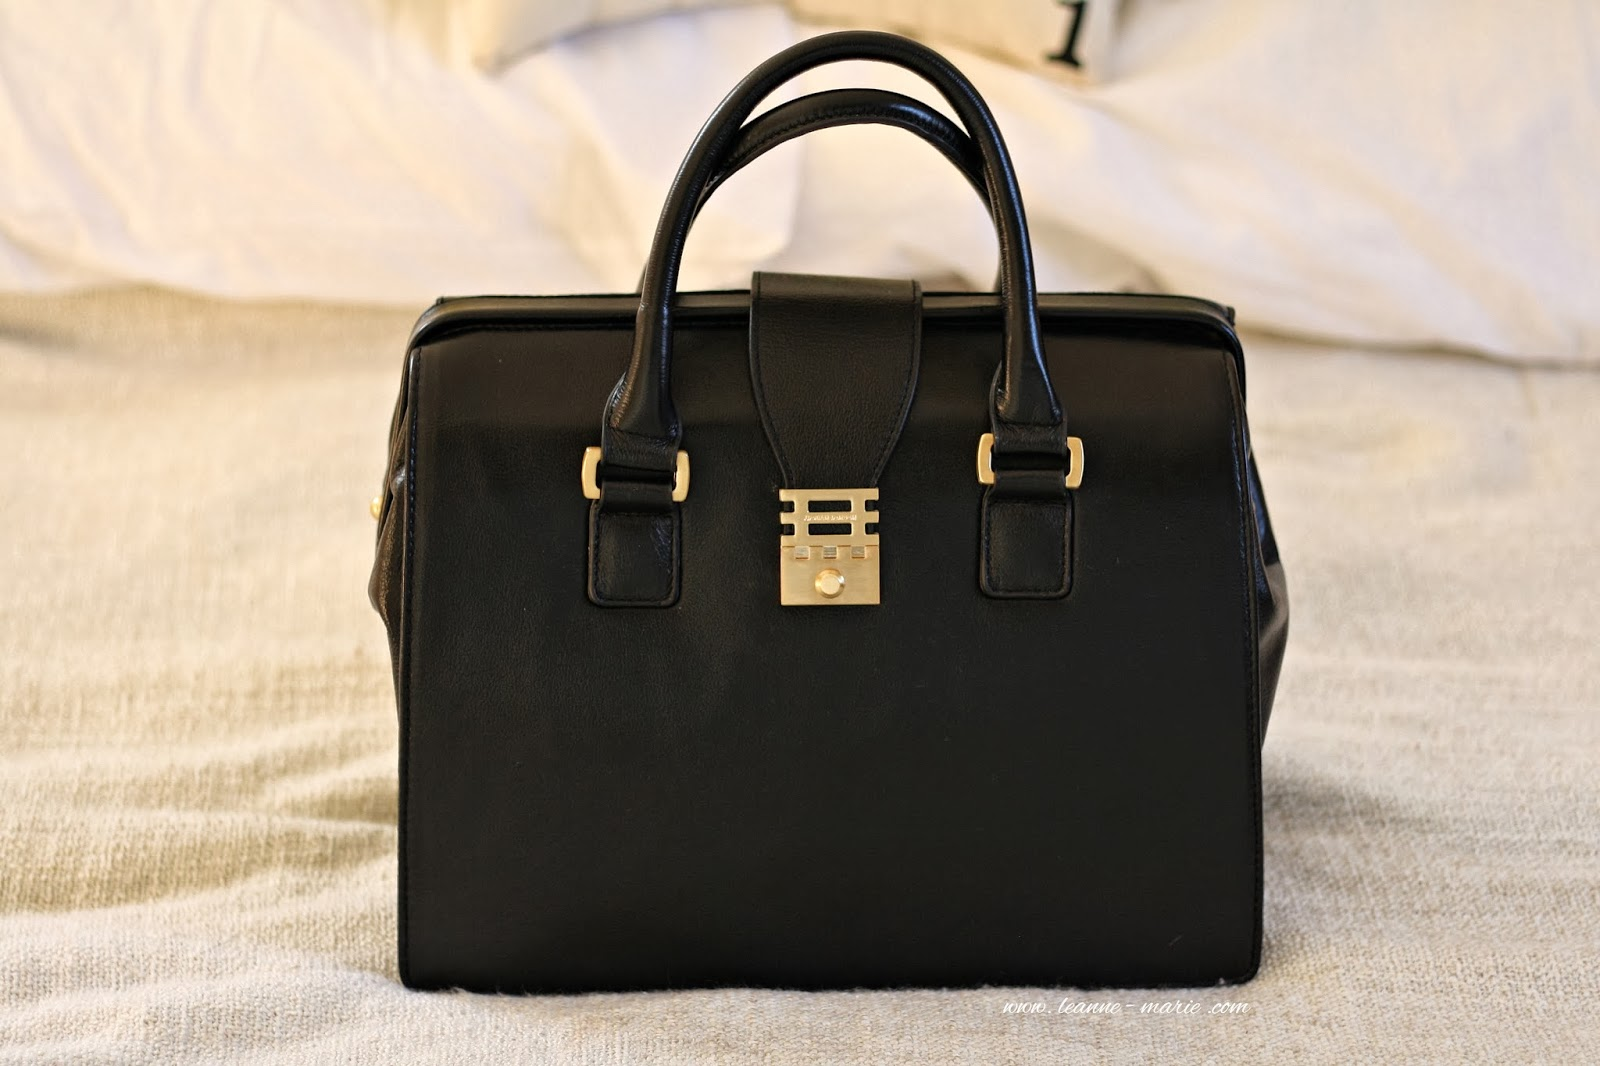 The Eleanor Doctor Style Tote From Florian London You May Have Seen This Bag Pop Up And A Of Past Outfit Posts